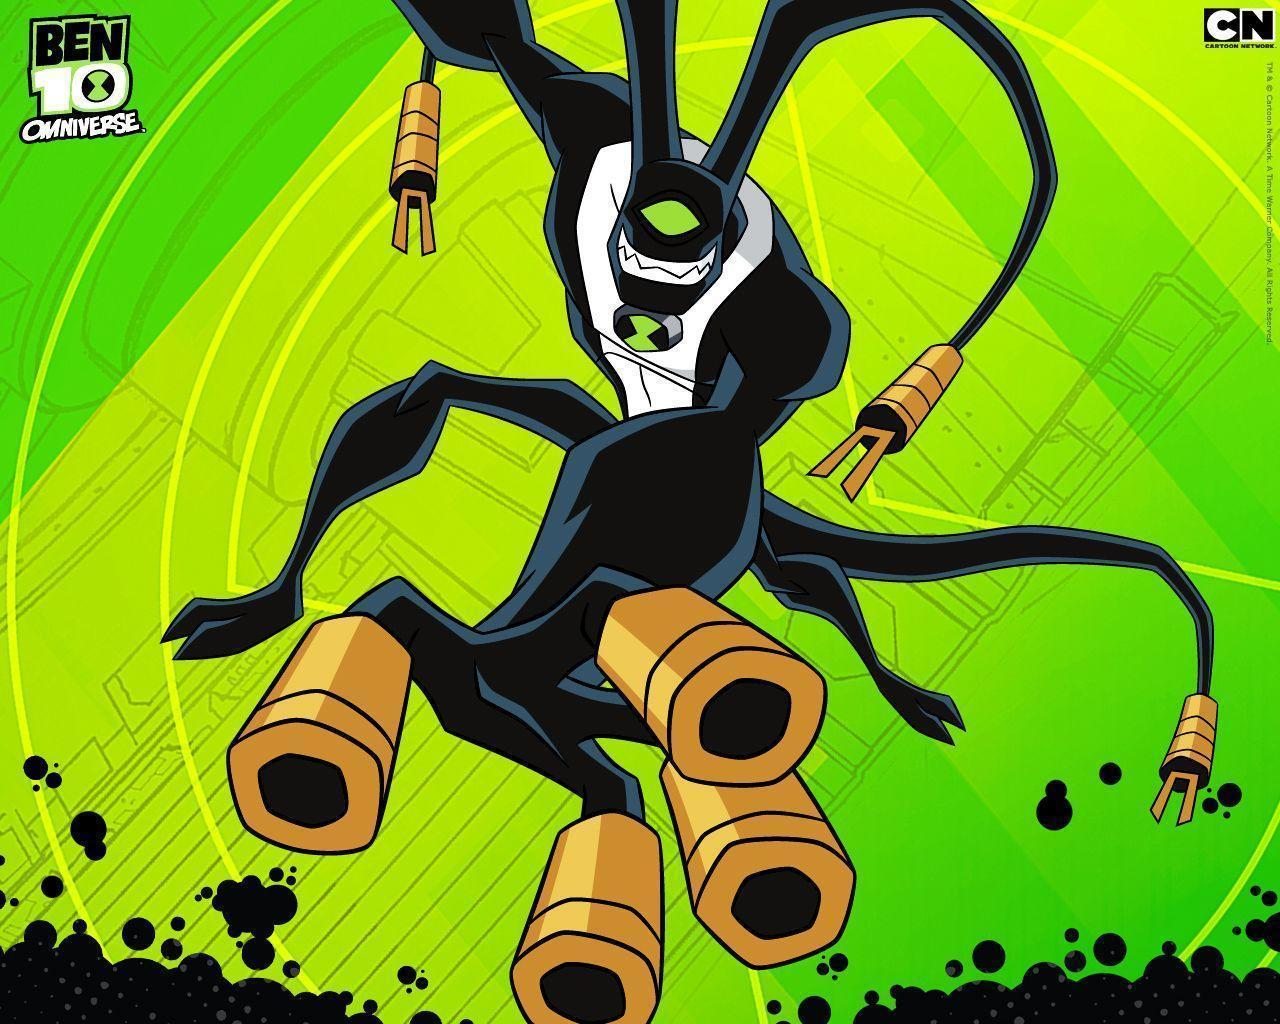 Ben 10: Omniverse Wallpapers - Wallpaper Cave